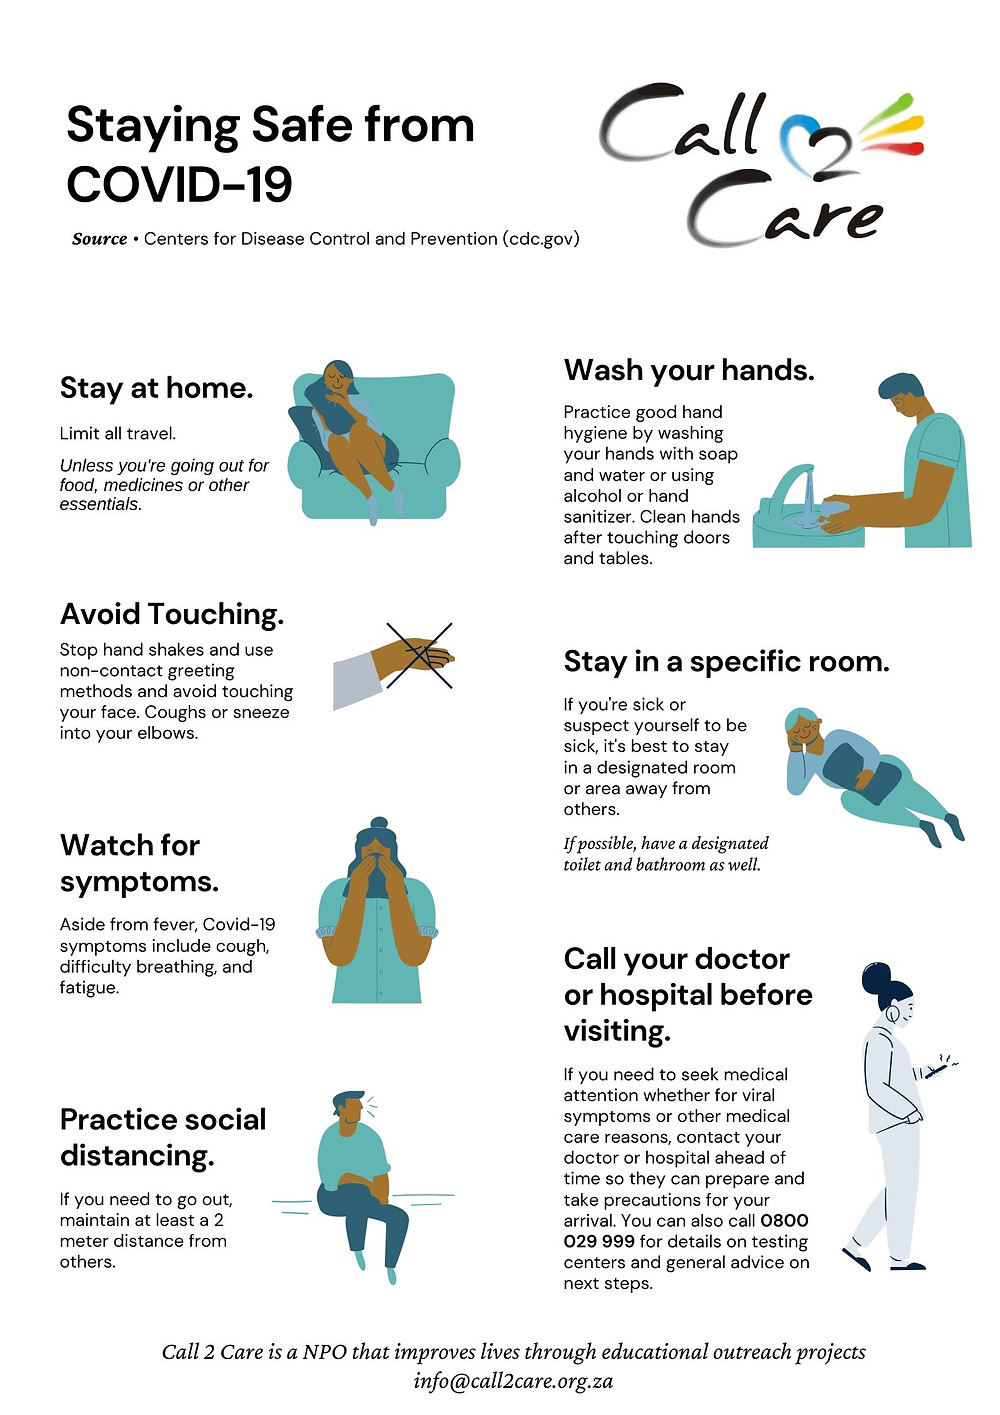 Staying Safe from COVID-19 South Africa Infographic Poster based on the recommendations from the Center of Disease Control and Prevention